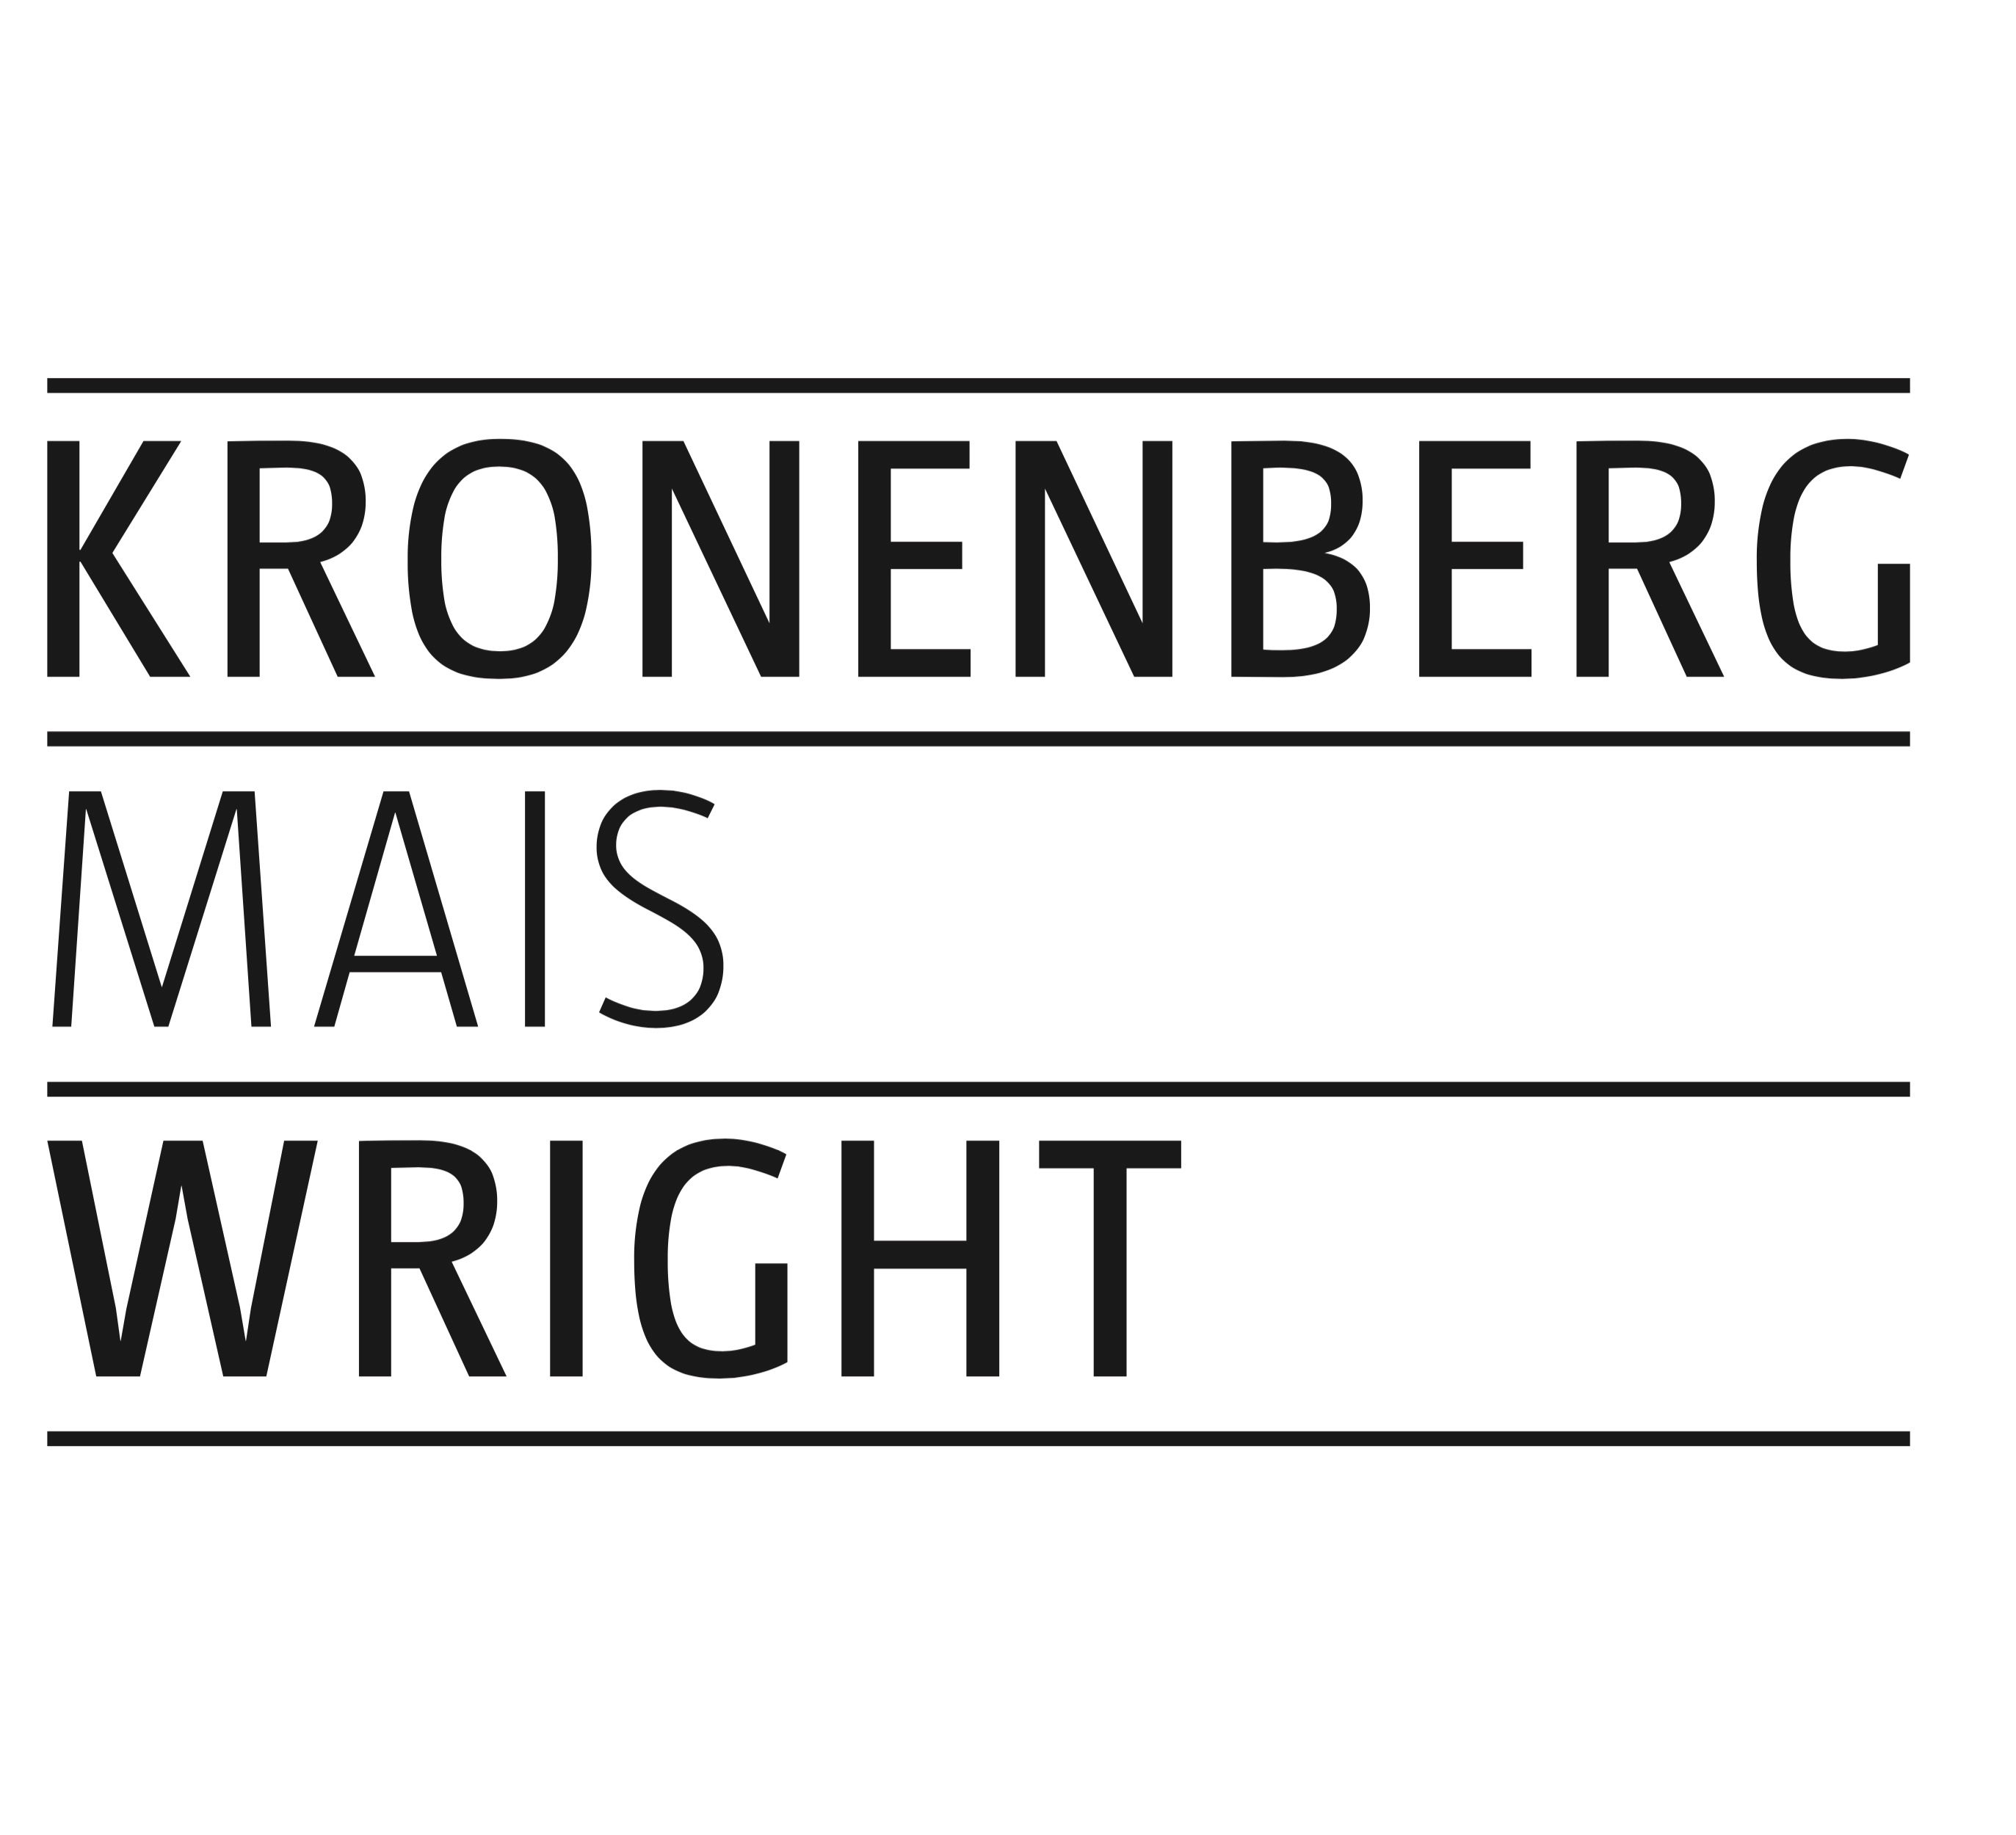 KRONENBERG MAIS WRIGHT